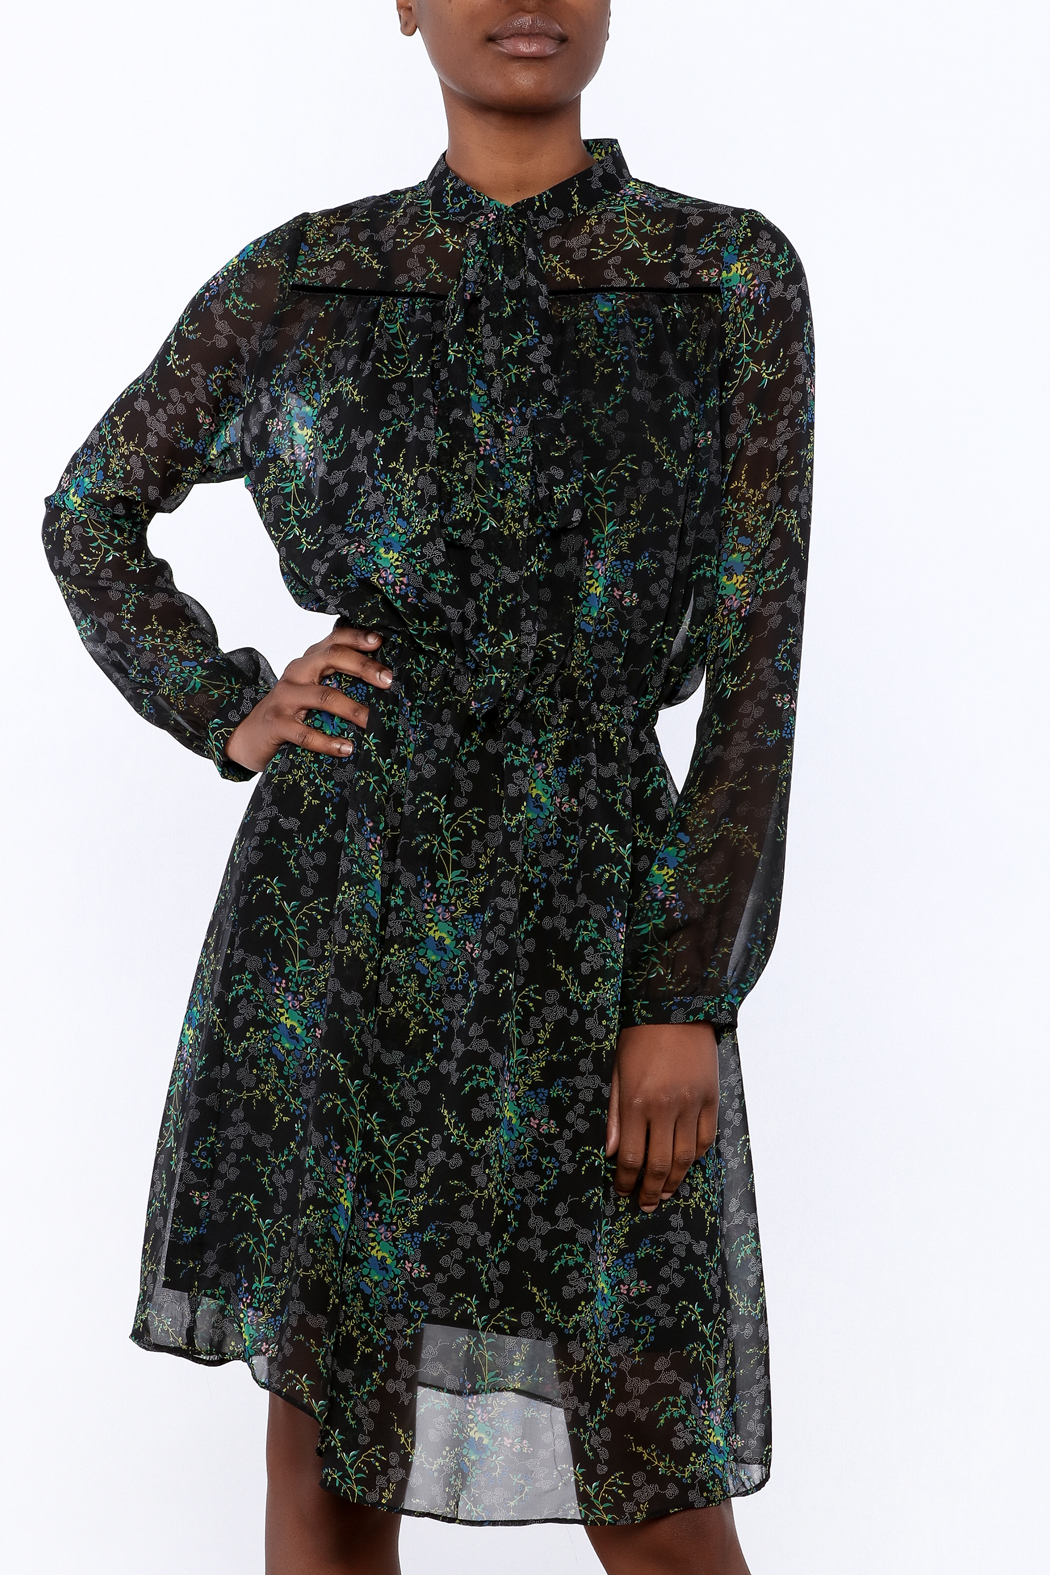 Beulah style dresses